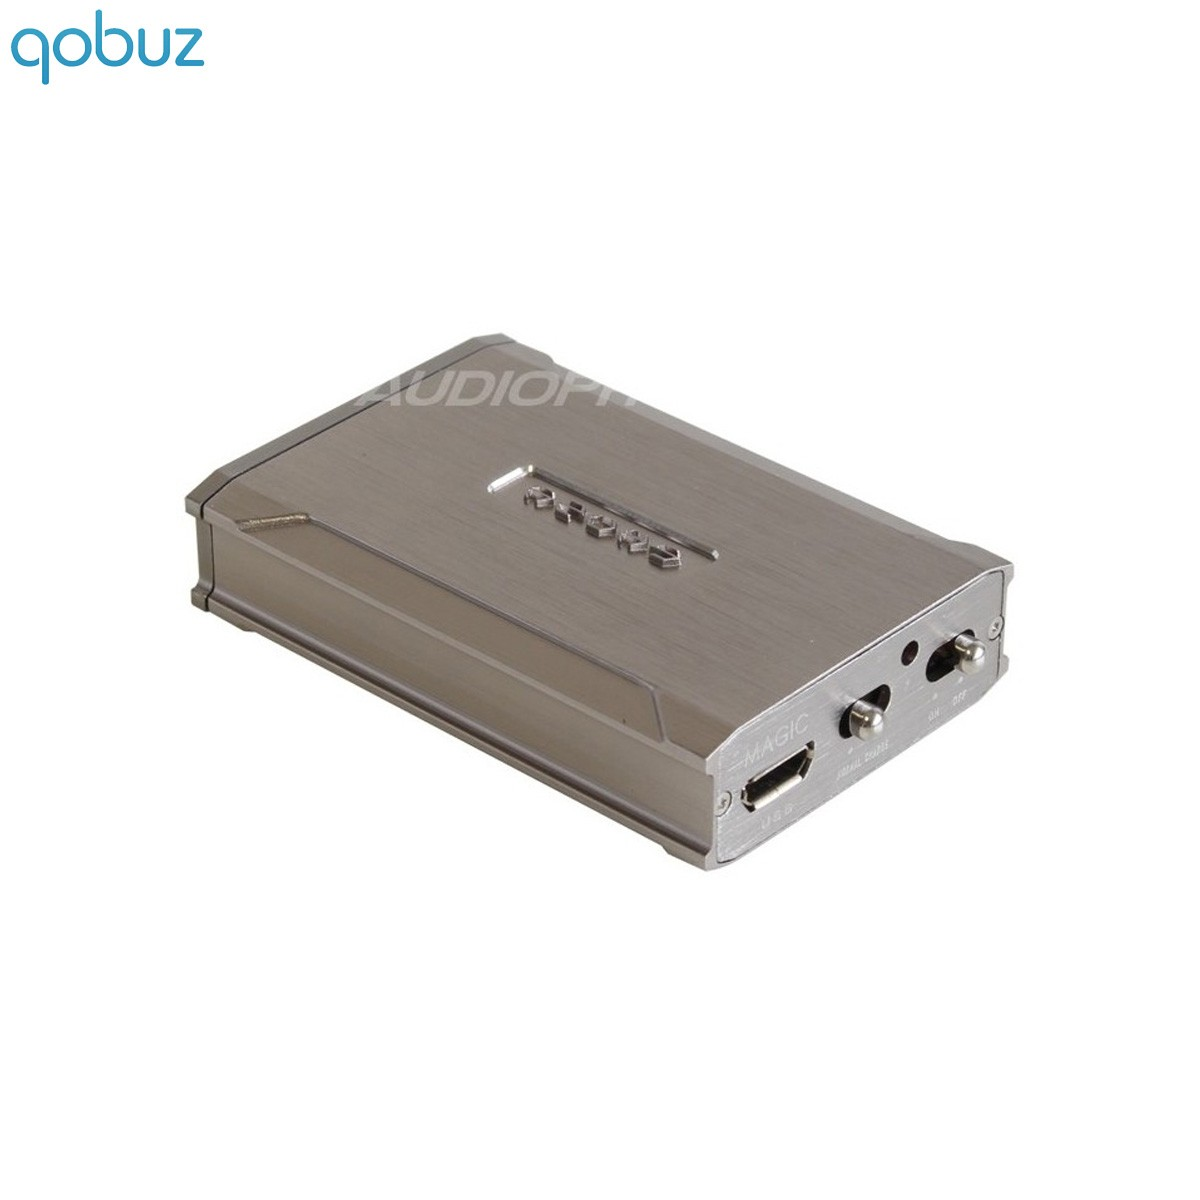 SHOZY Magic Mini DAC USB Amplificateur Casque Portable OTG